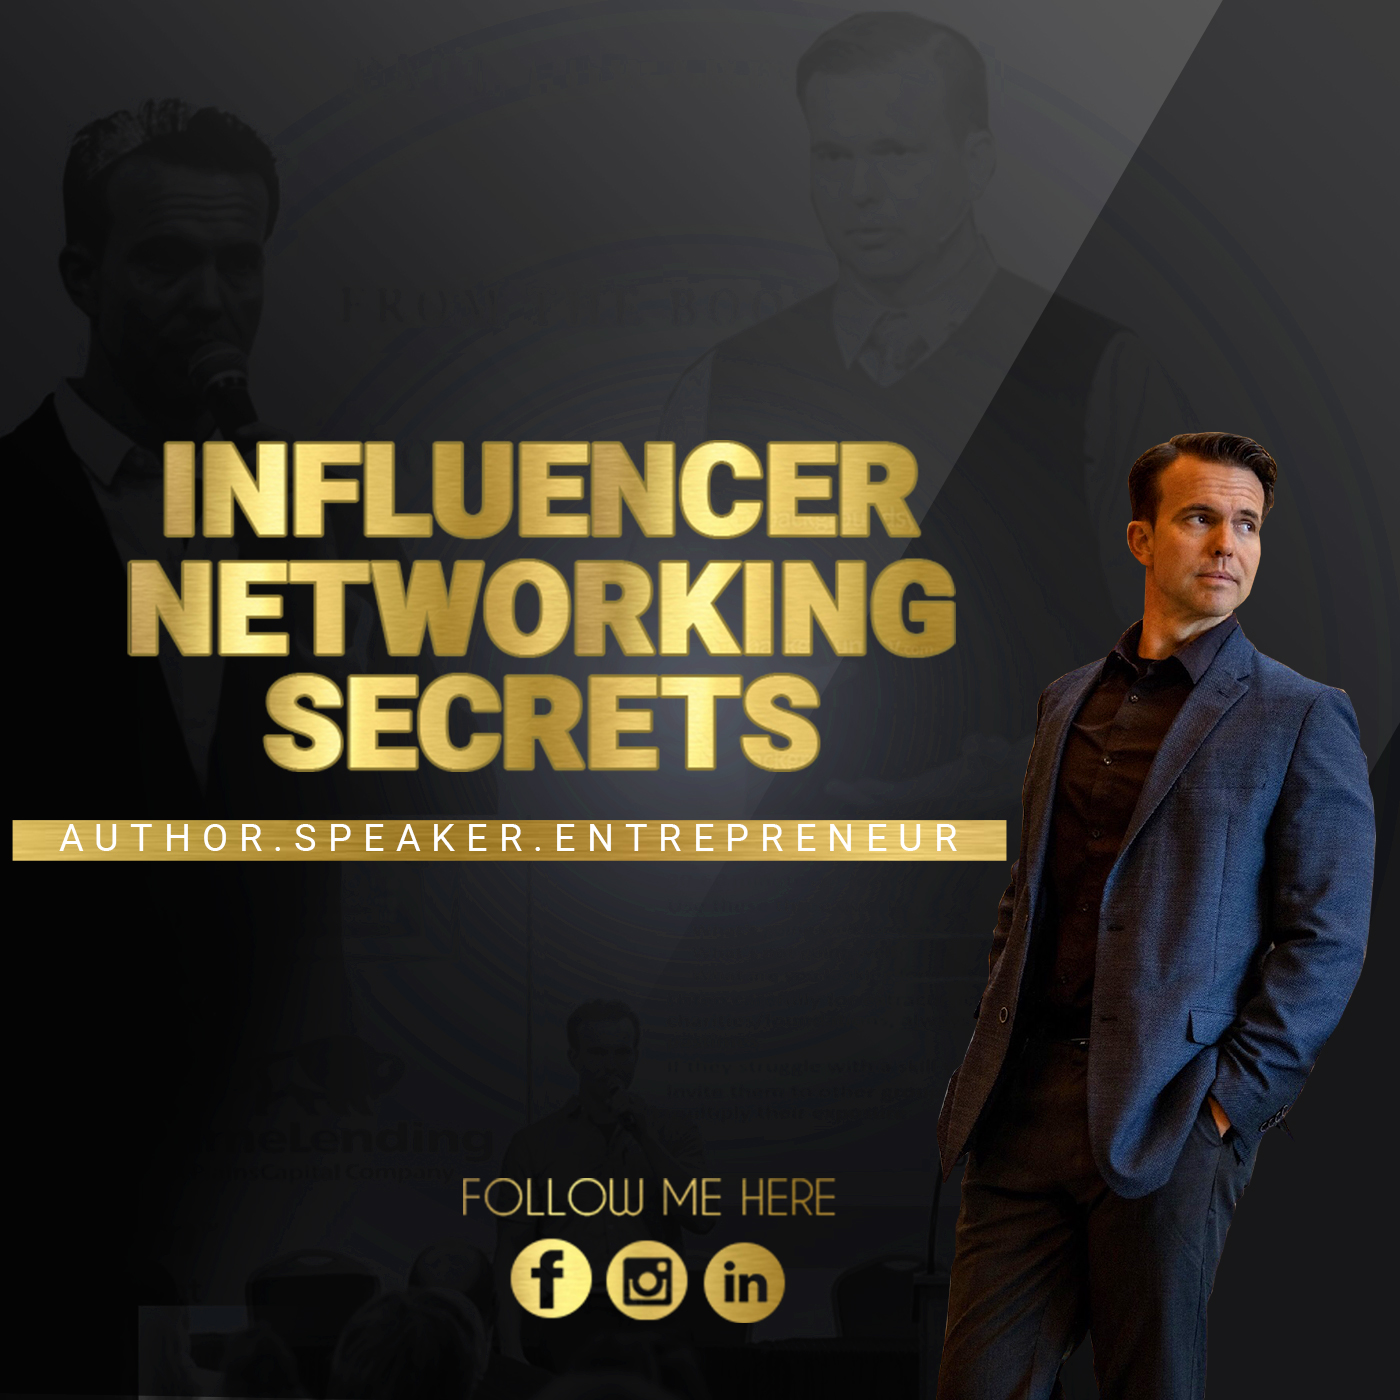 Influencer Networking Secrets Podcast